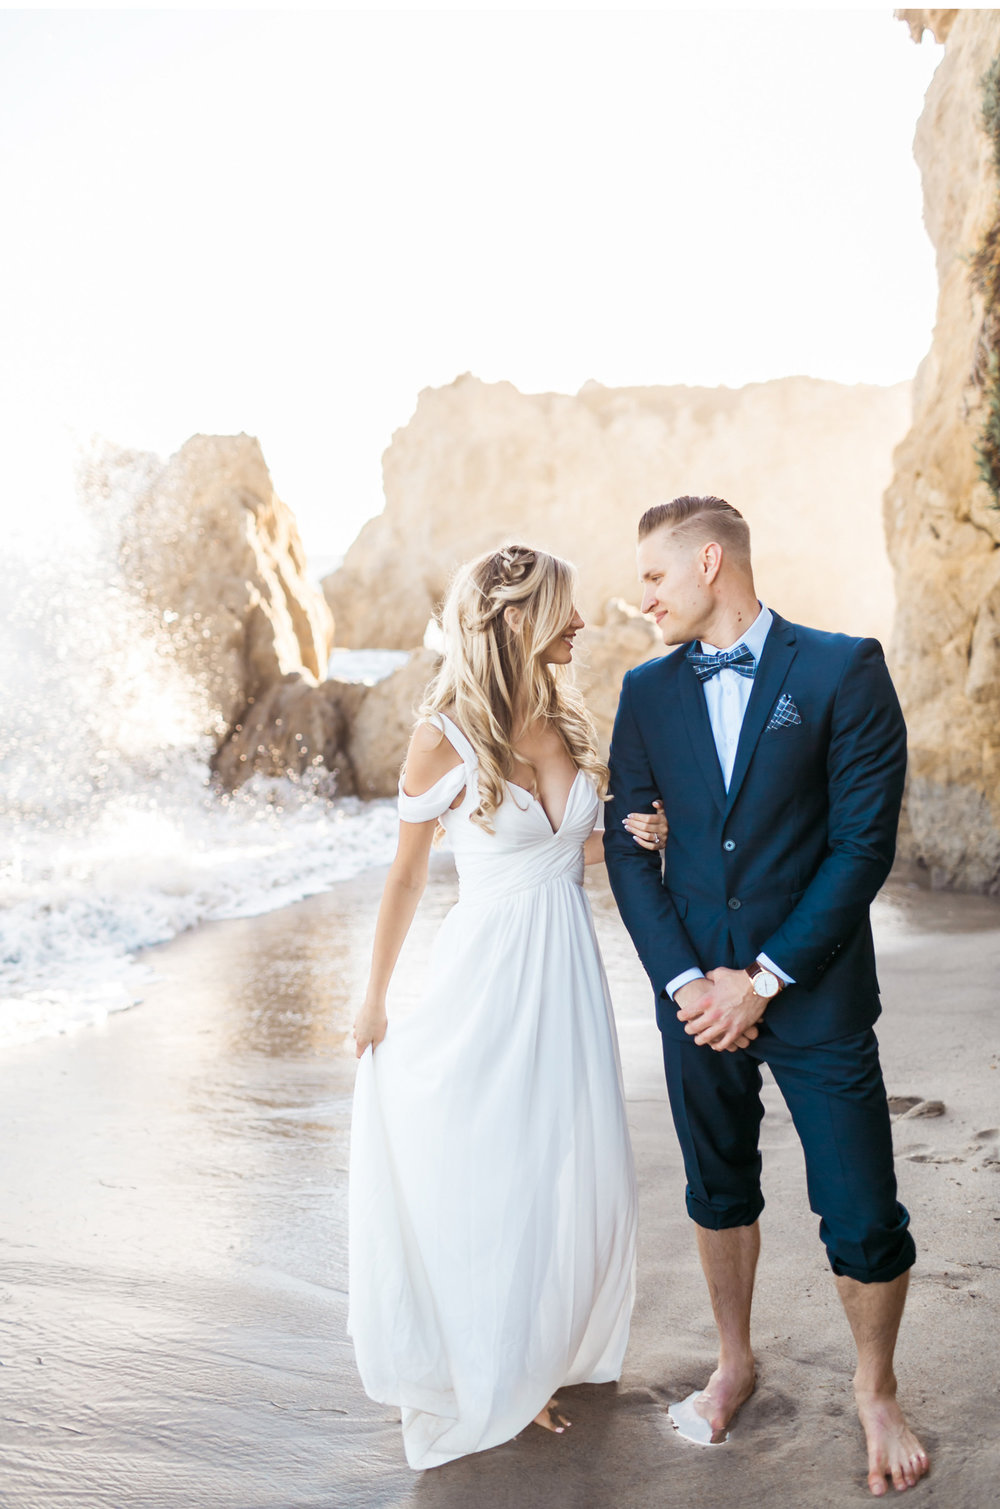 Style-Me-Pretty-Malibu-Wedding-Natalie-Schutt-Photography_13.jpg